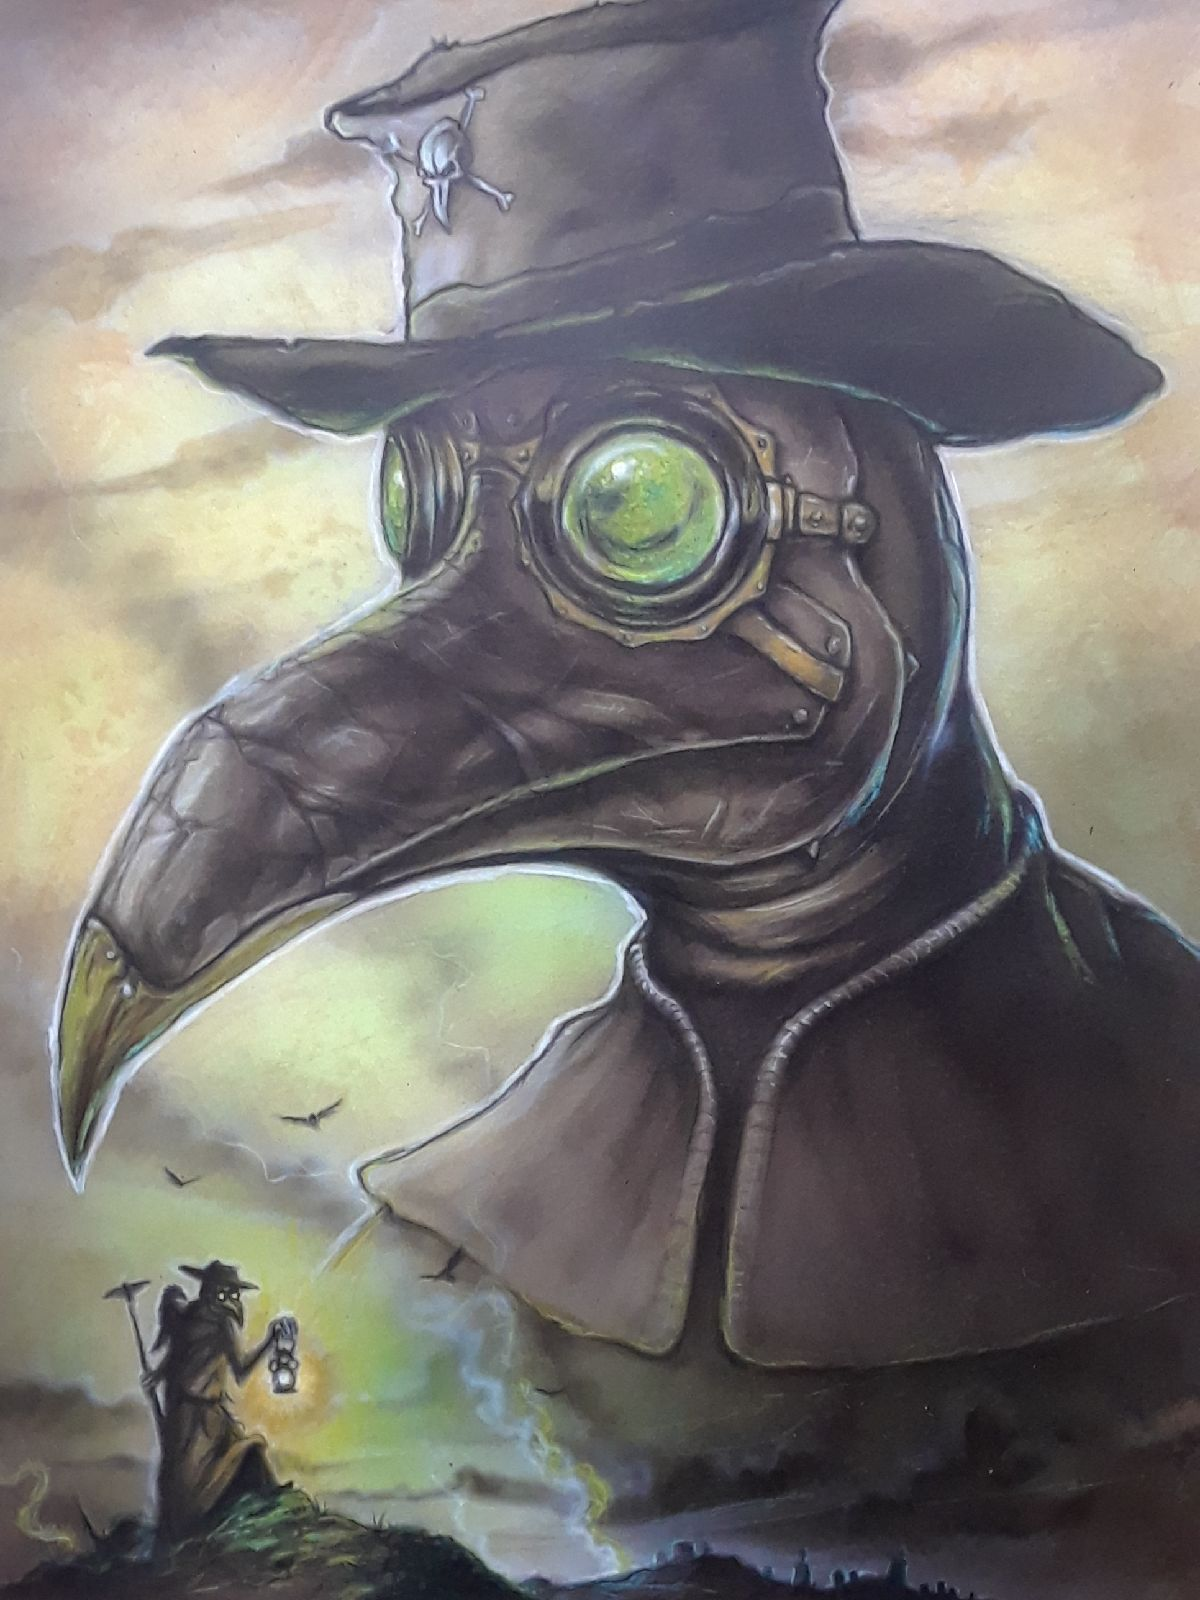 Plague Dr. painting